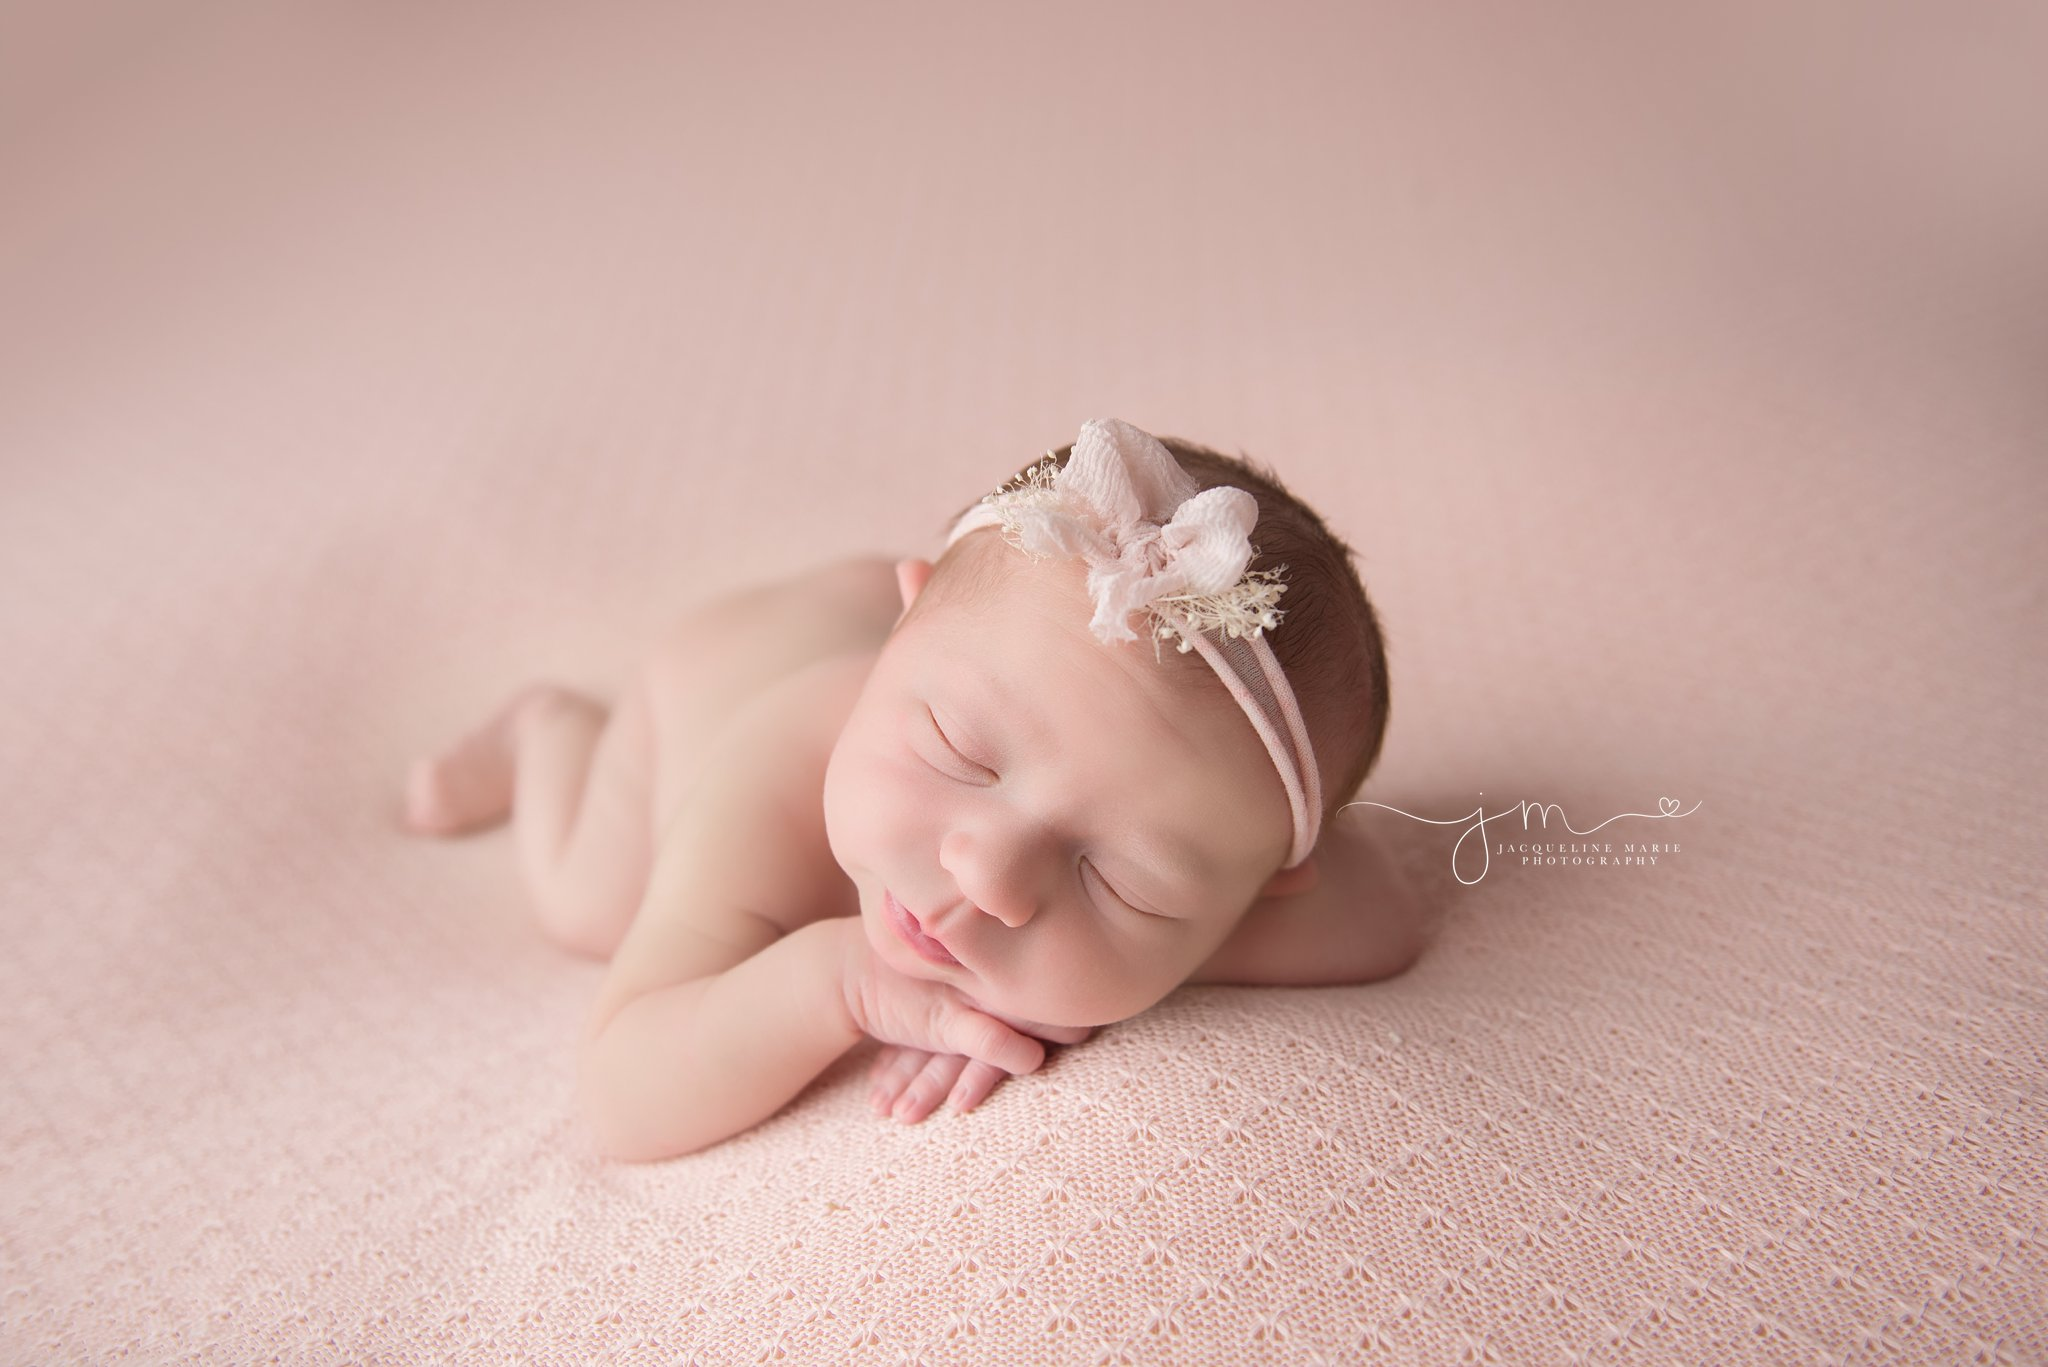 columbus ohio newborn baby girl lays on pink knitted blanket and wears headband with pink bow for newborn photography portraits